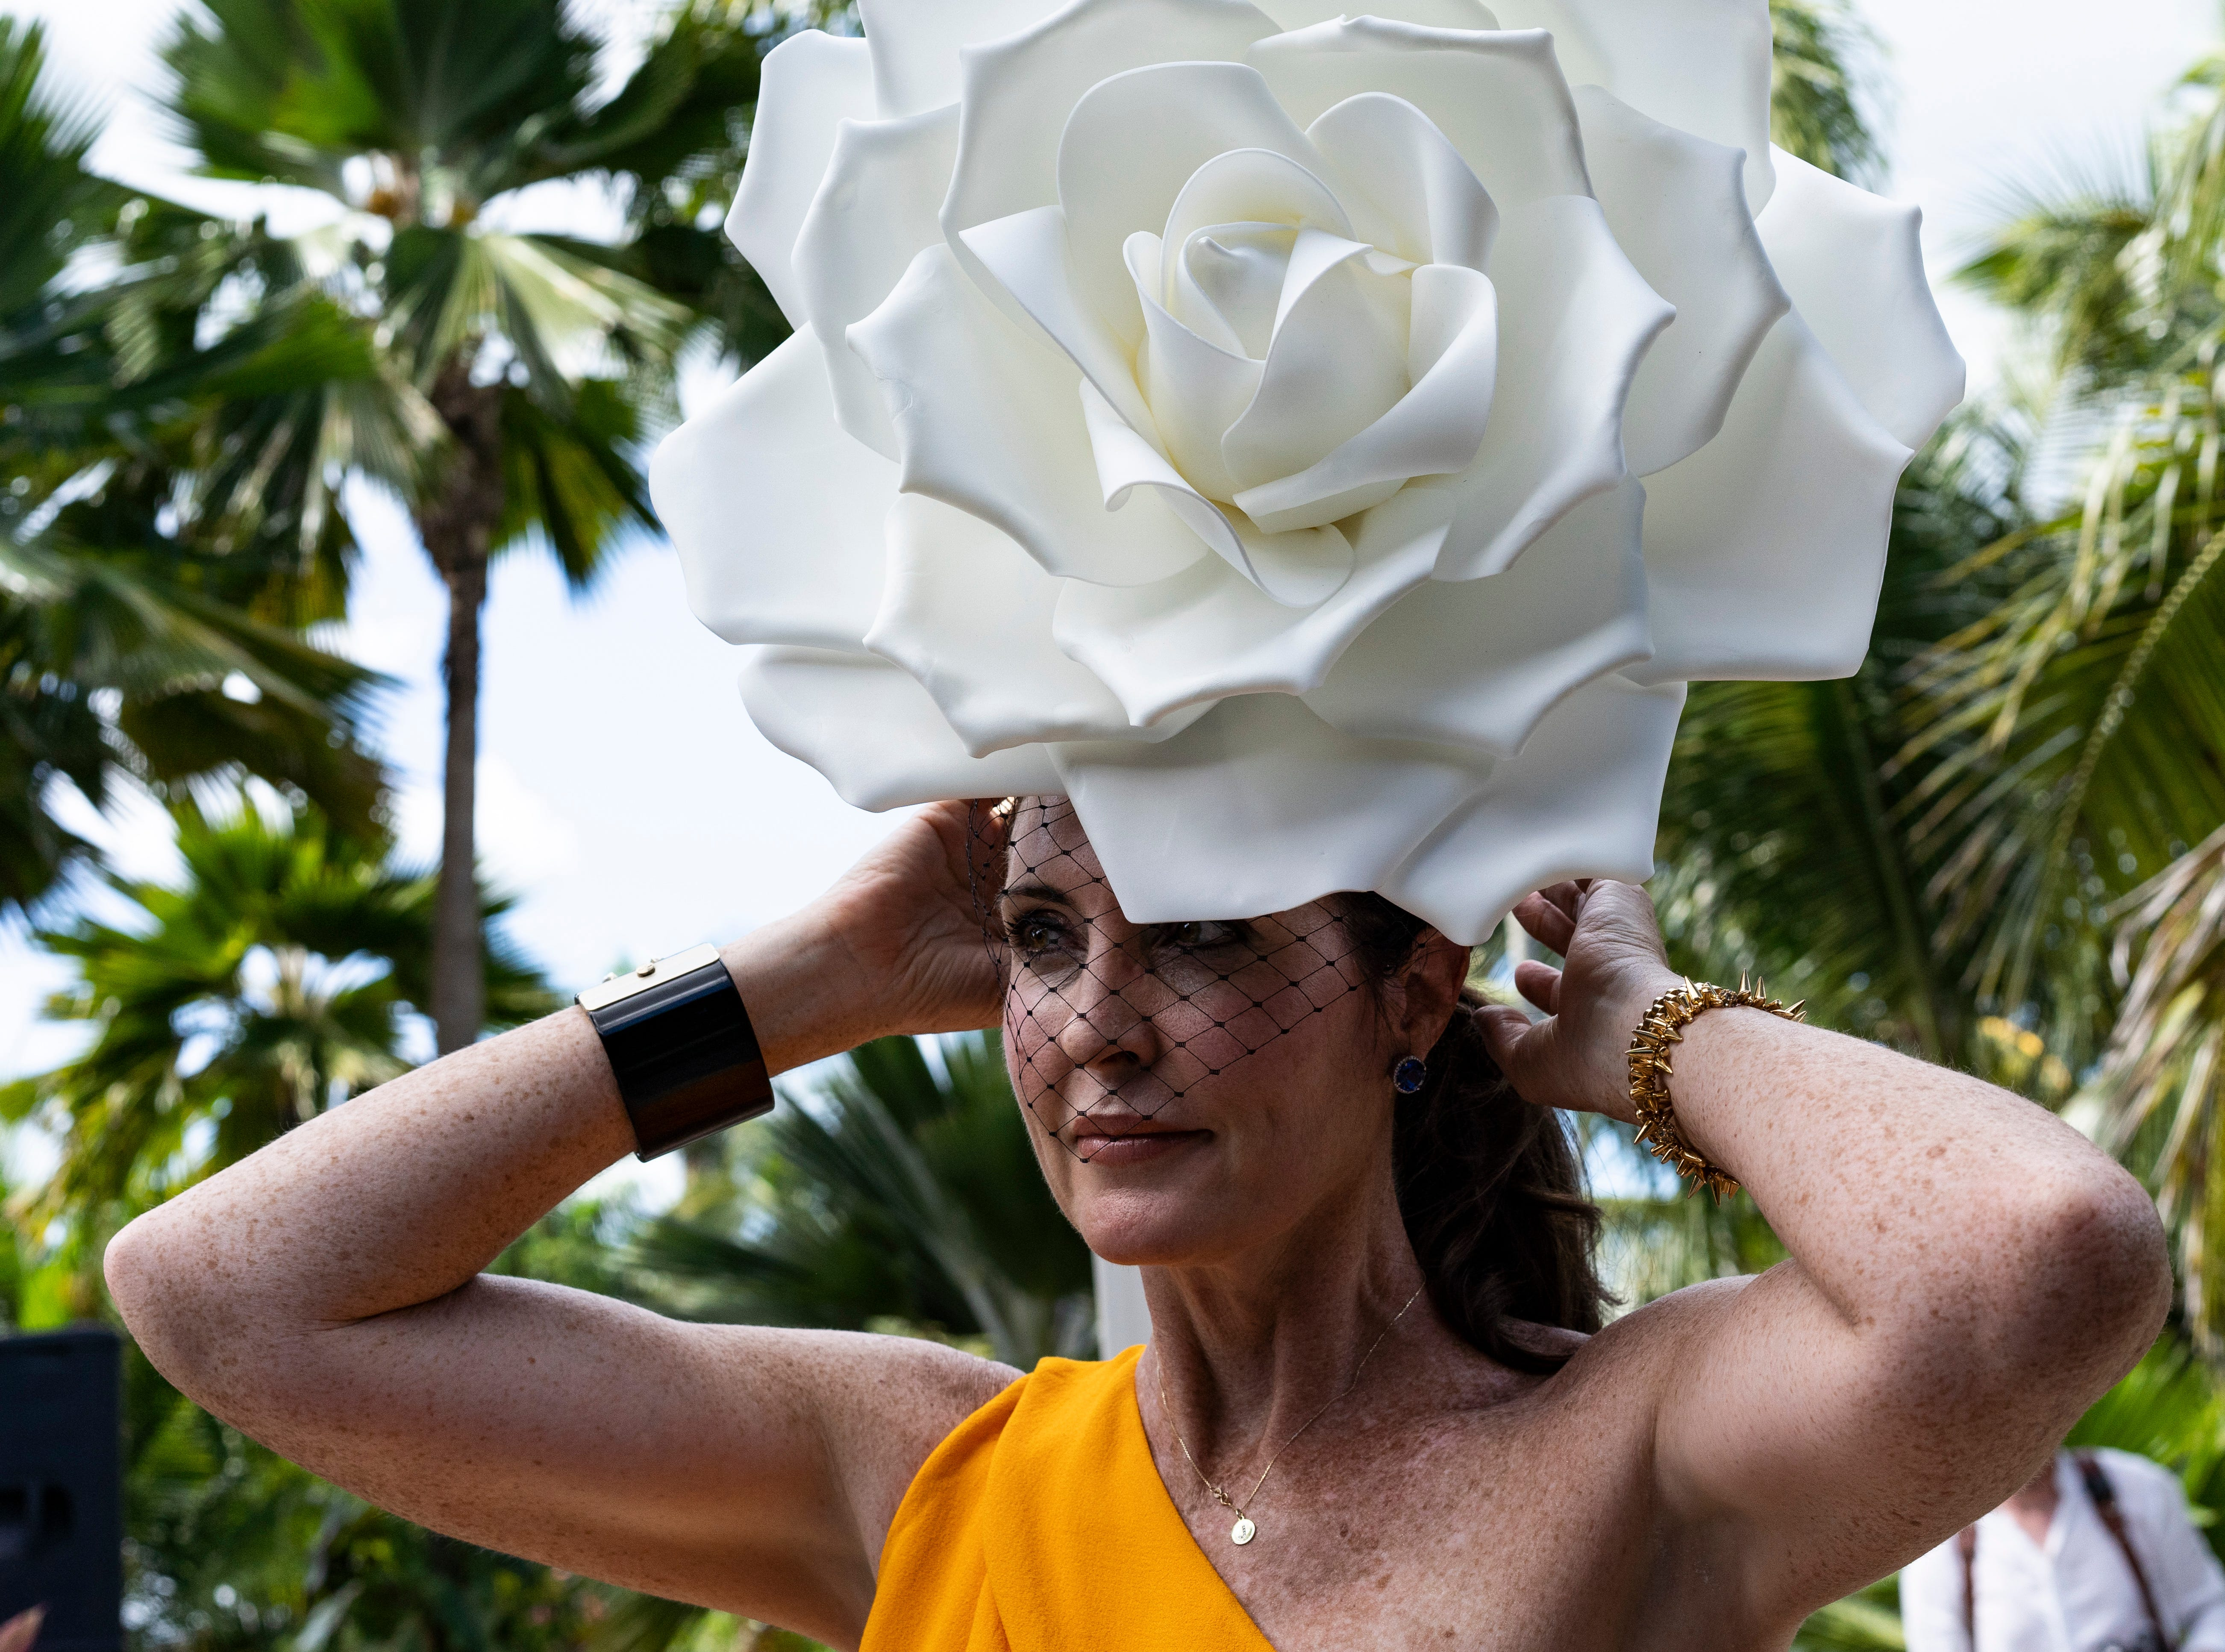 Denise Murray of Park Shore puts on her Aarturo Rios white rose hat on for 15th Annual Hats in the Garden fundraiser themed Rubies and Roses, at the Naples Botanical Garden on Nov. 7, 2018.